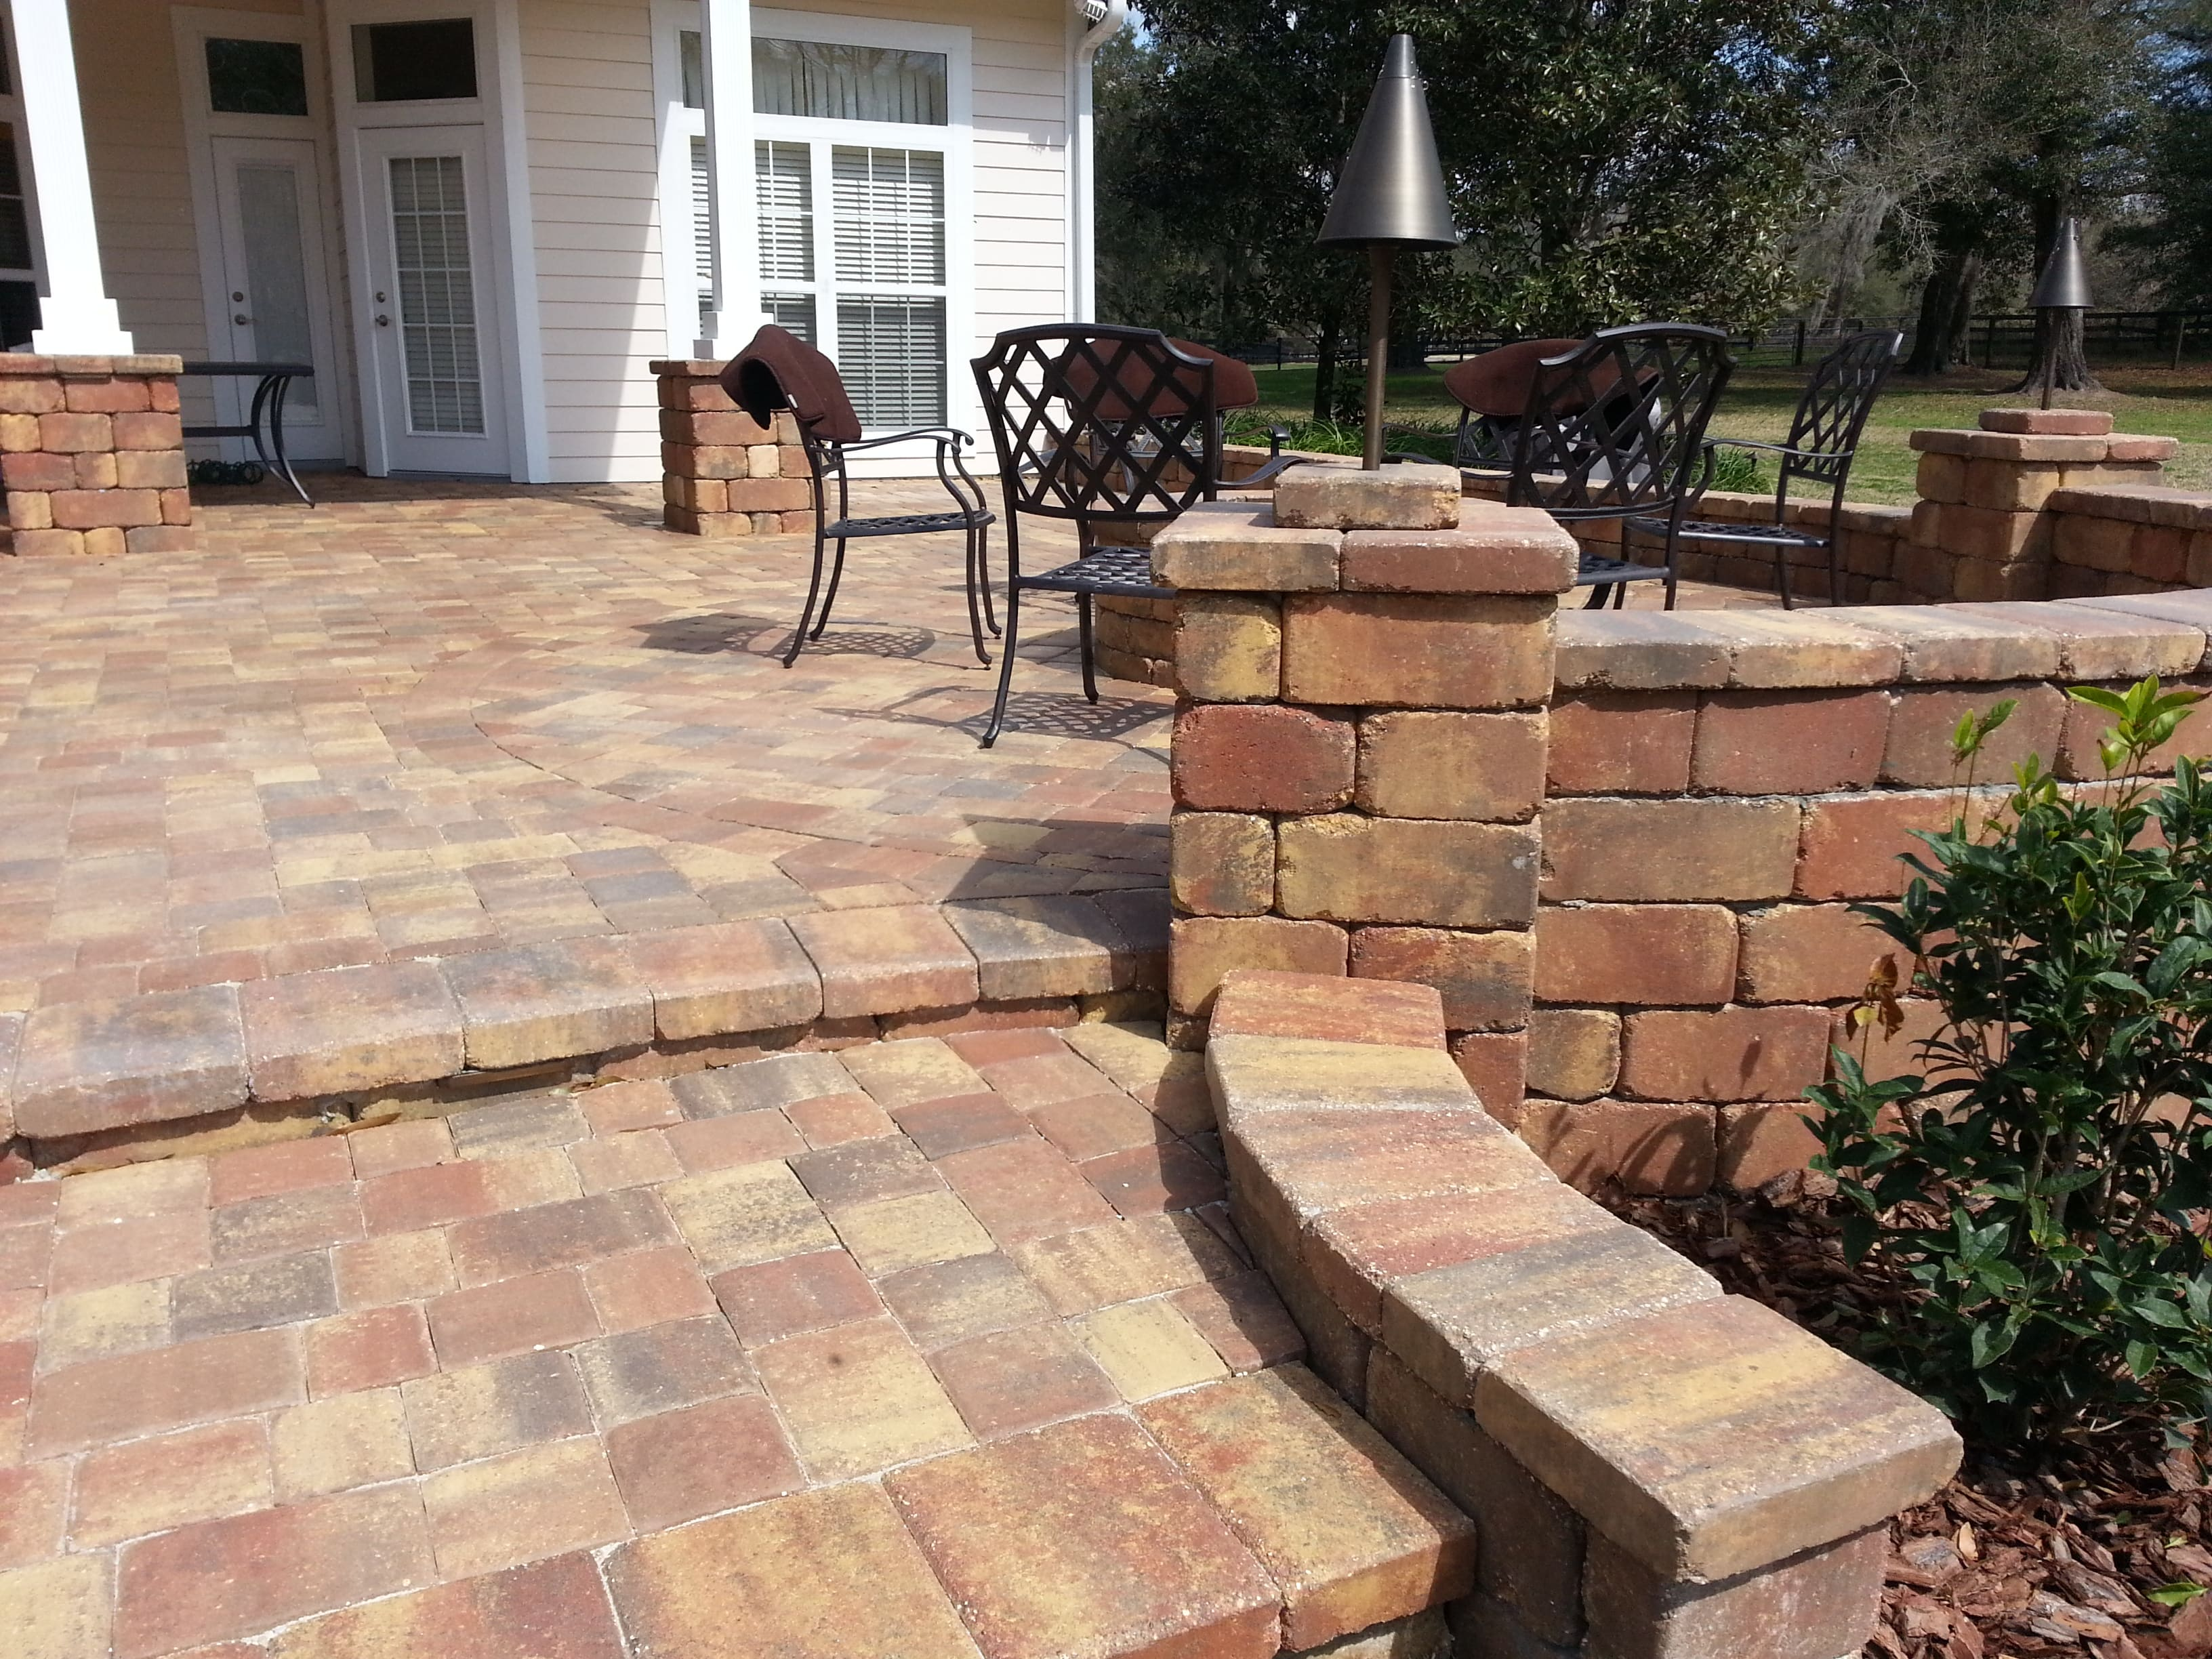 Concrete Patio and Wall in Autumn Blend